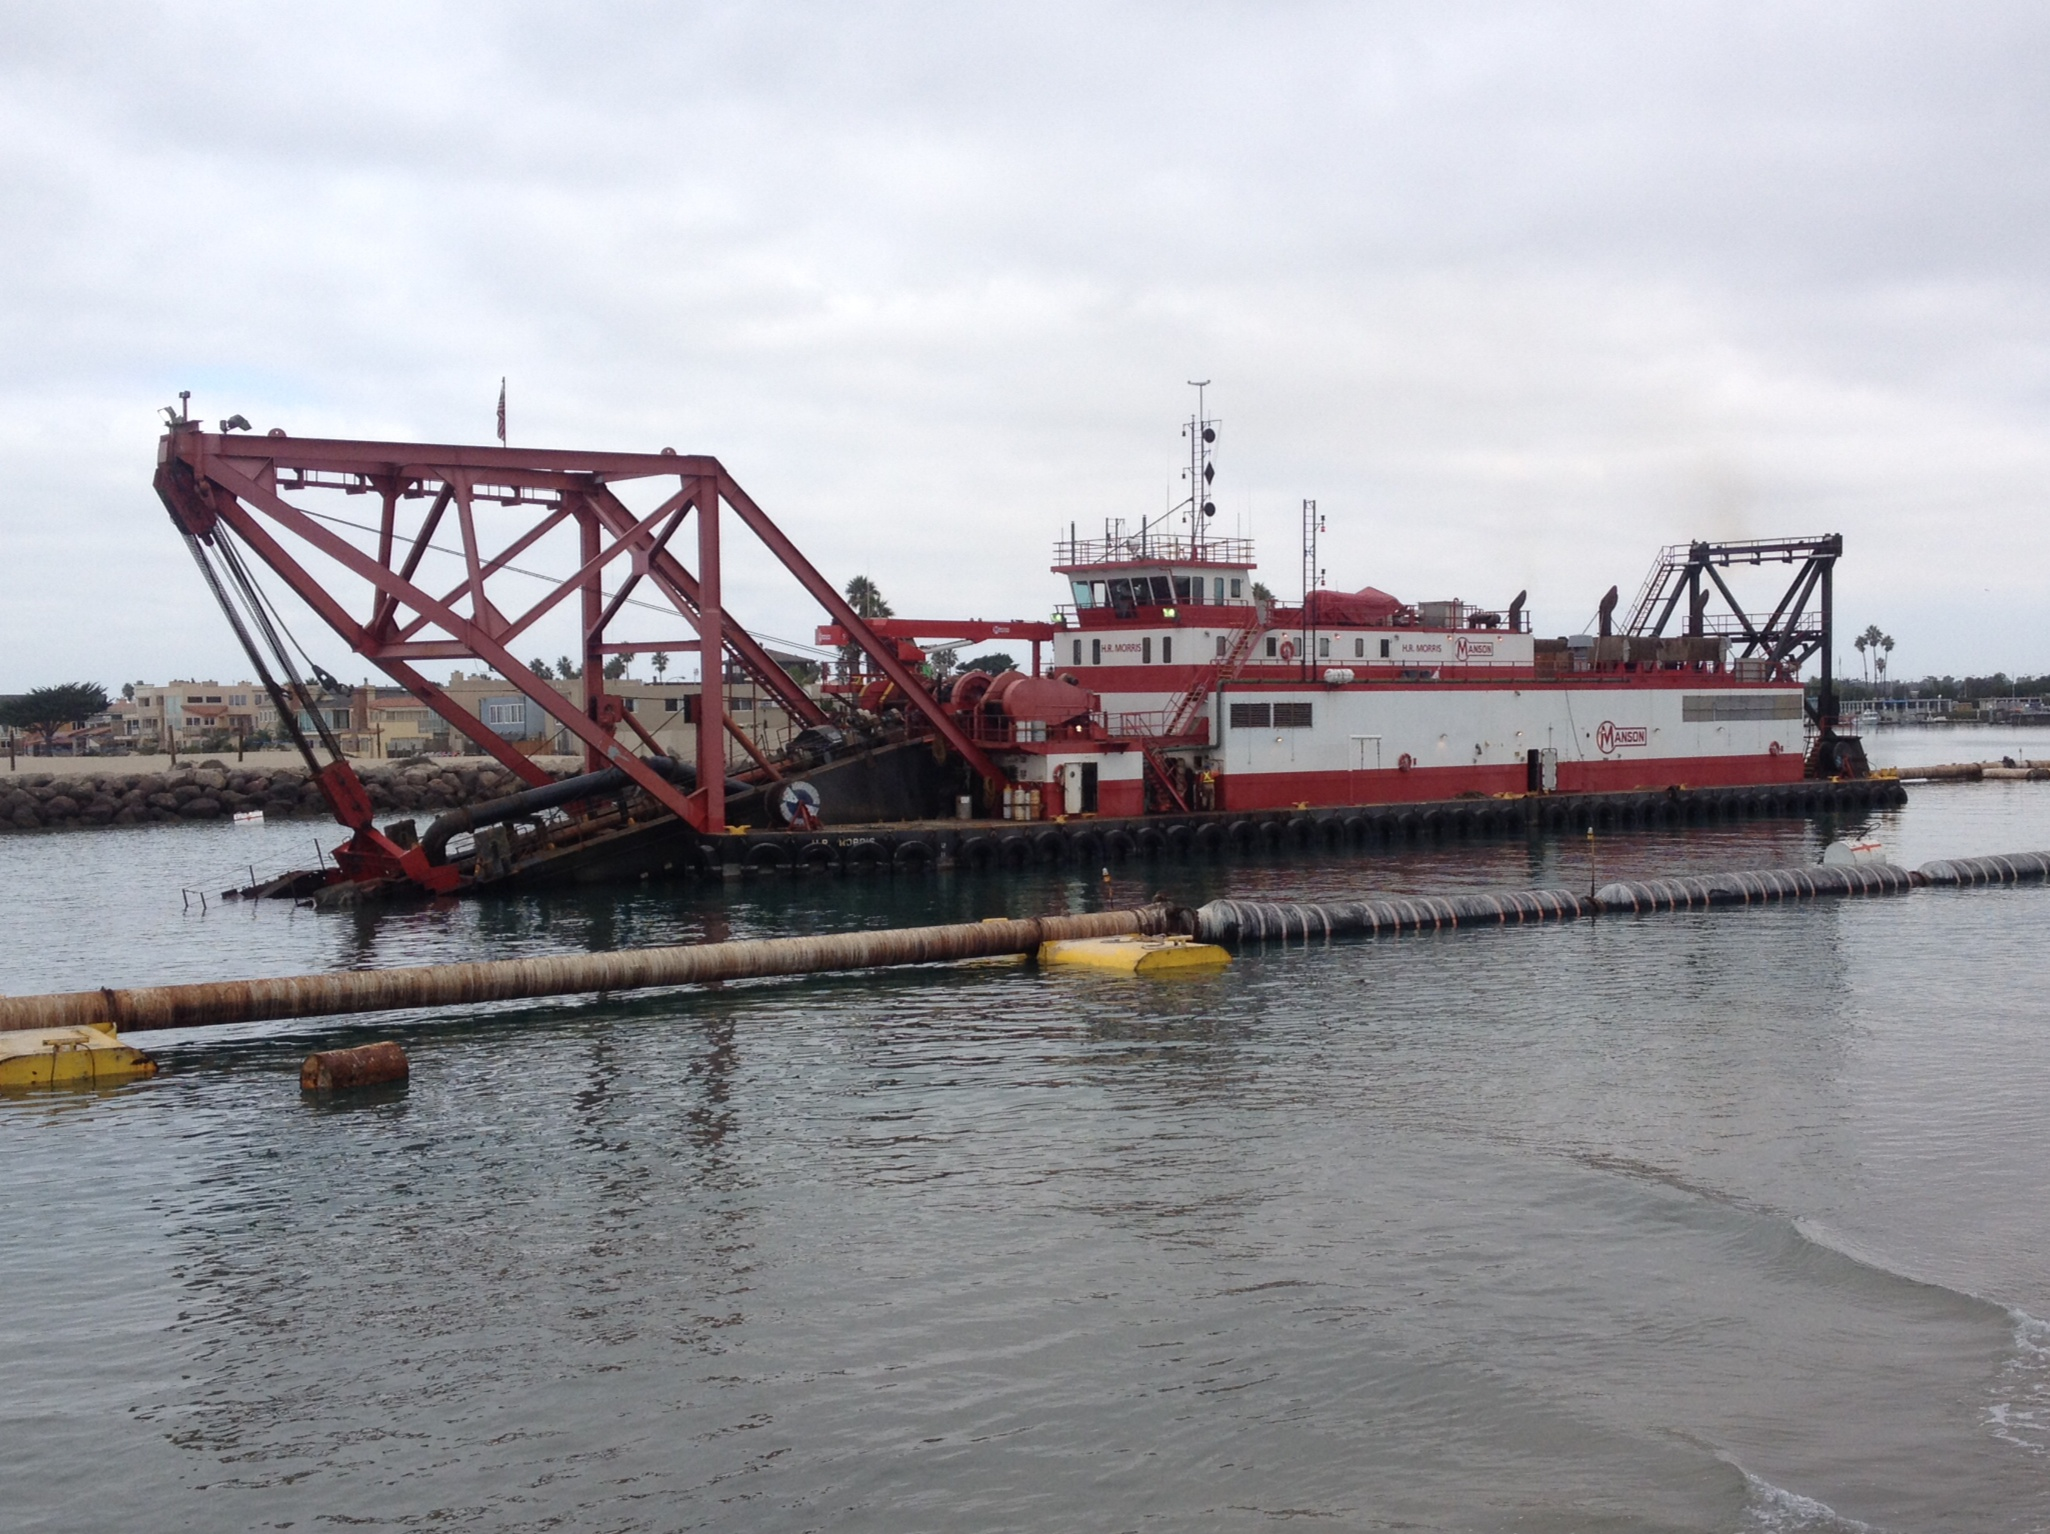 Record amount of sand being dredged at Channel Islands Harbor